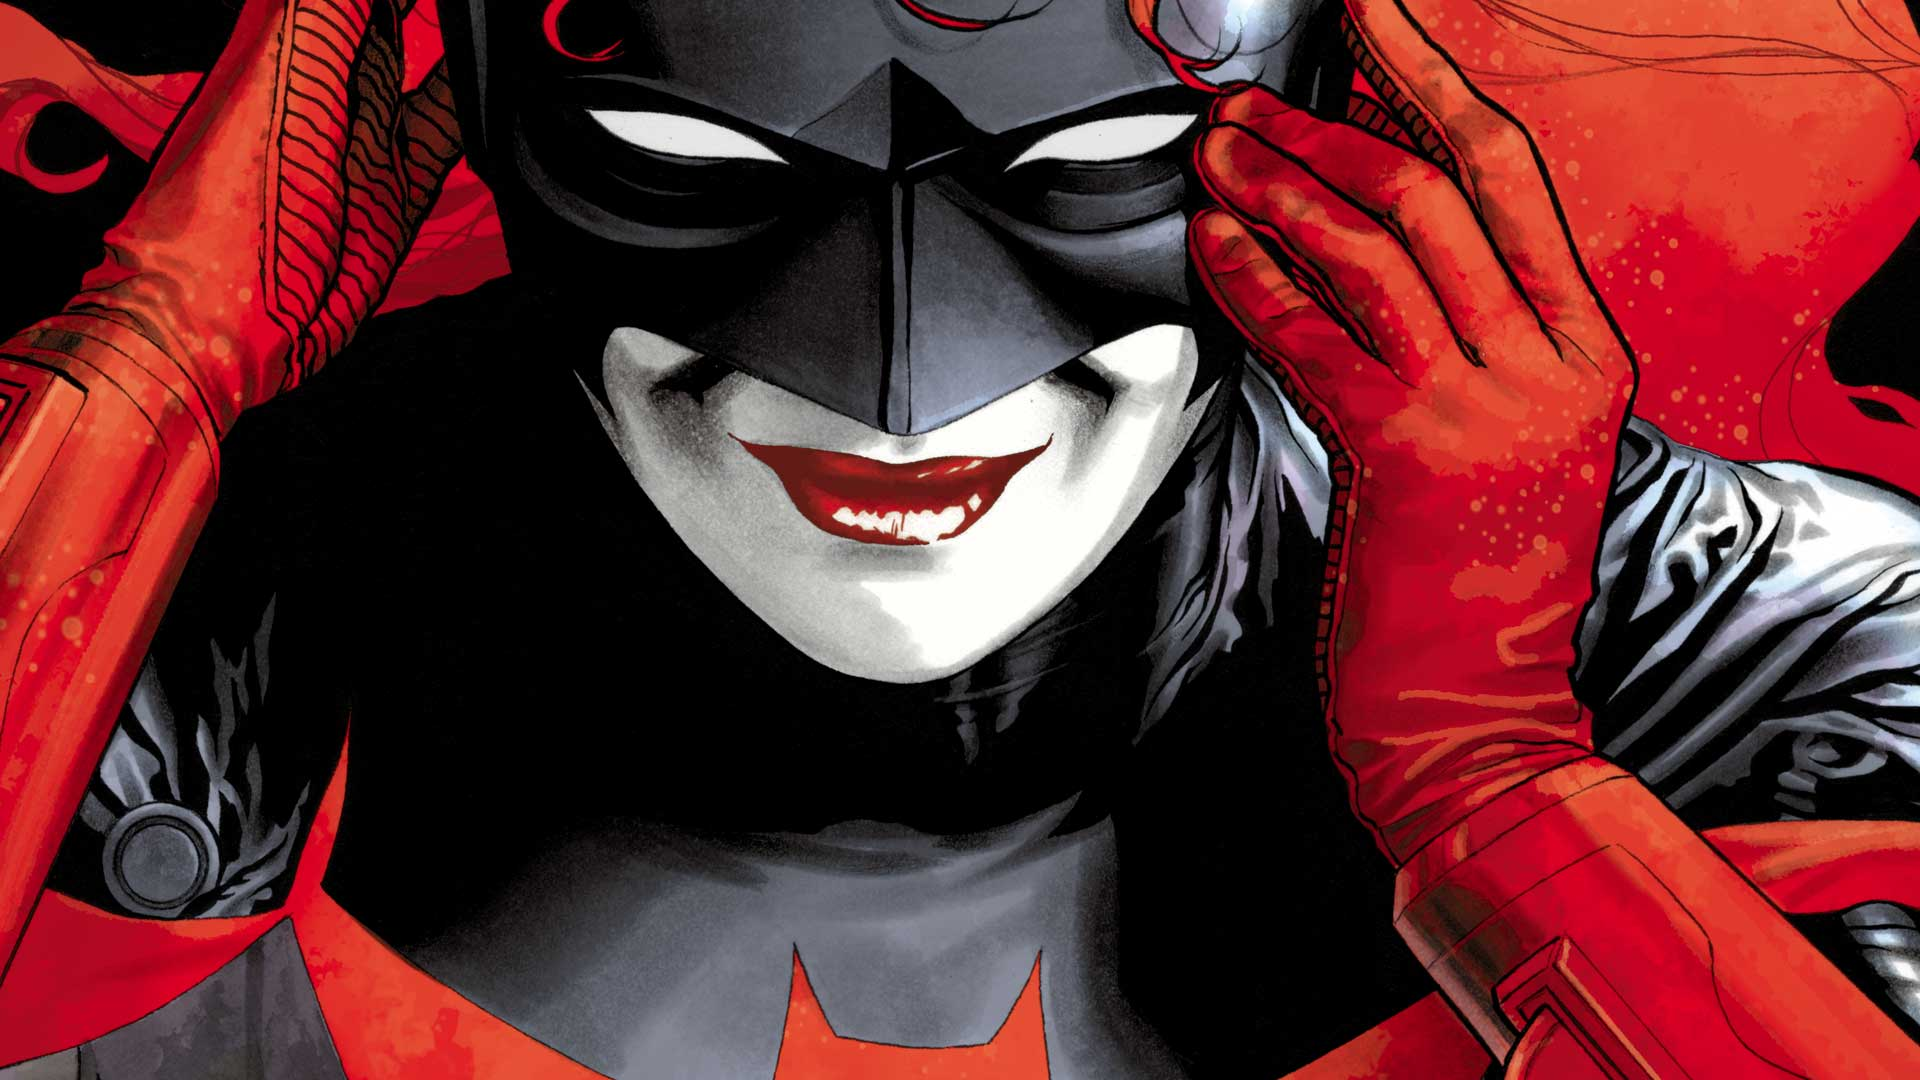 Next Arrowverse Crossover to Include Batwoman, Add the City of Gotham